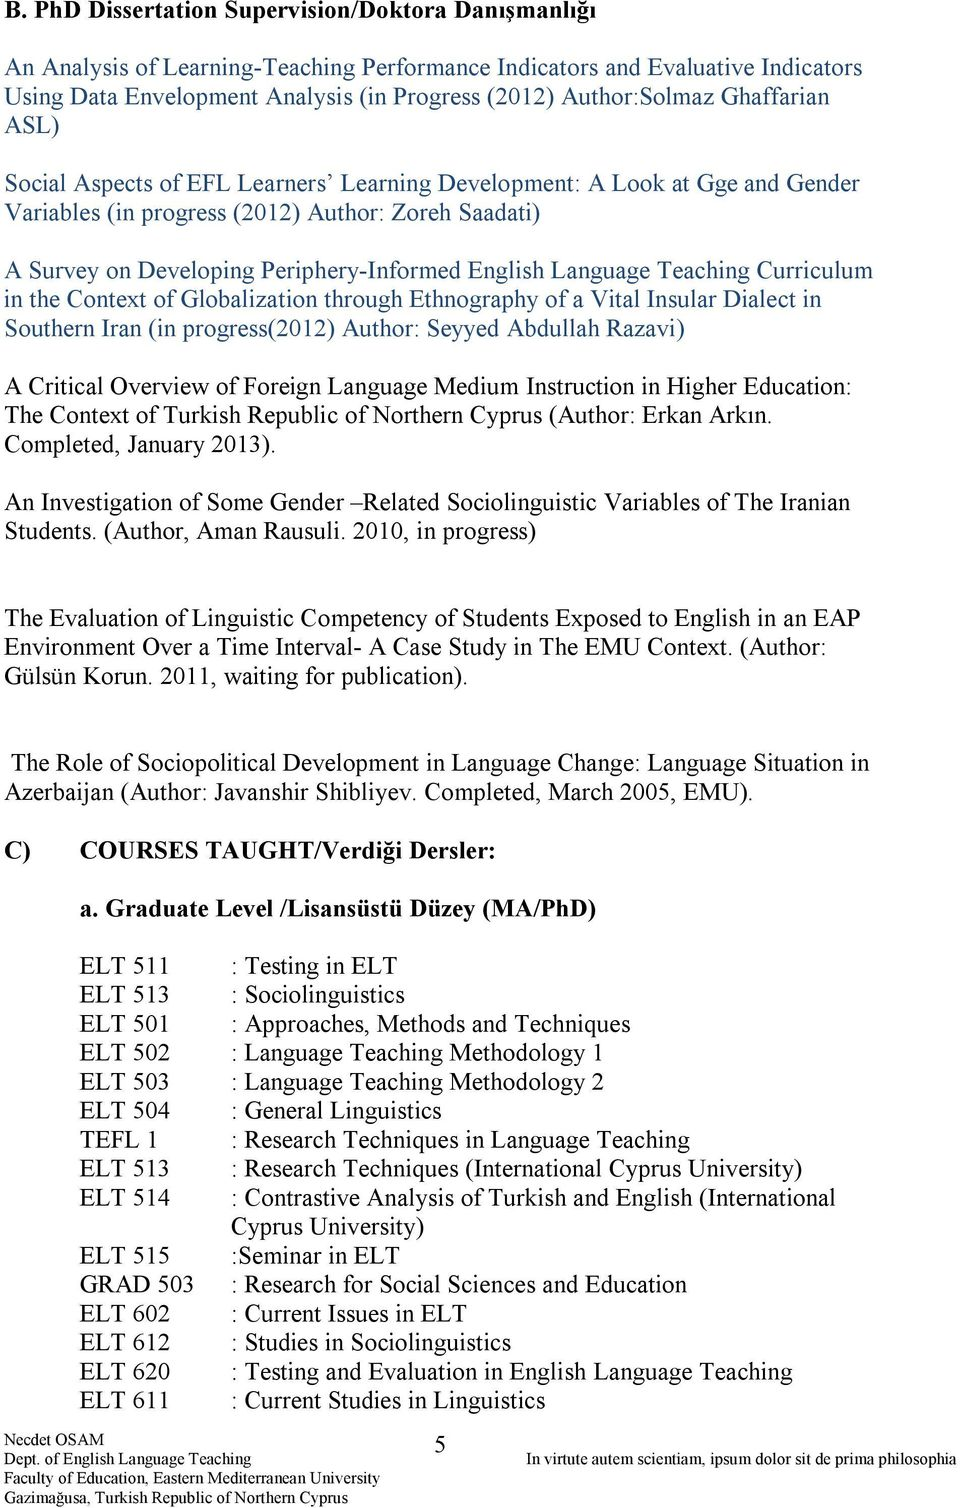 Periphery-Informed English Language Teaching Curriculum in the Context of Globalization through Ethnography of a Vital Insular Dialect in Southern Iran (in progress(2012) Author: Seyyed Abdullah